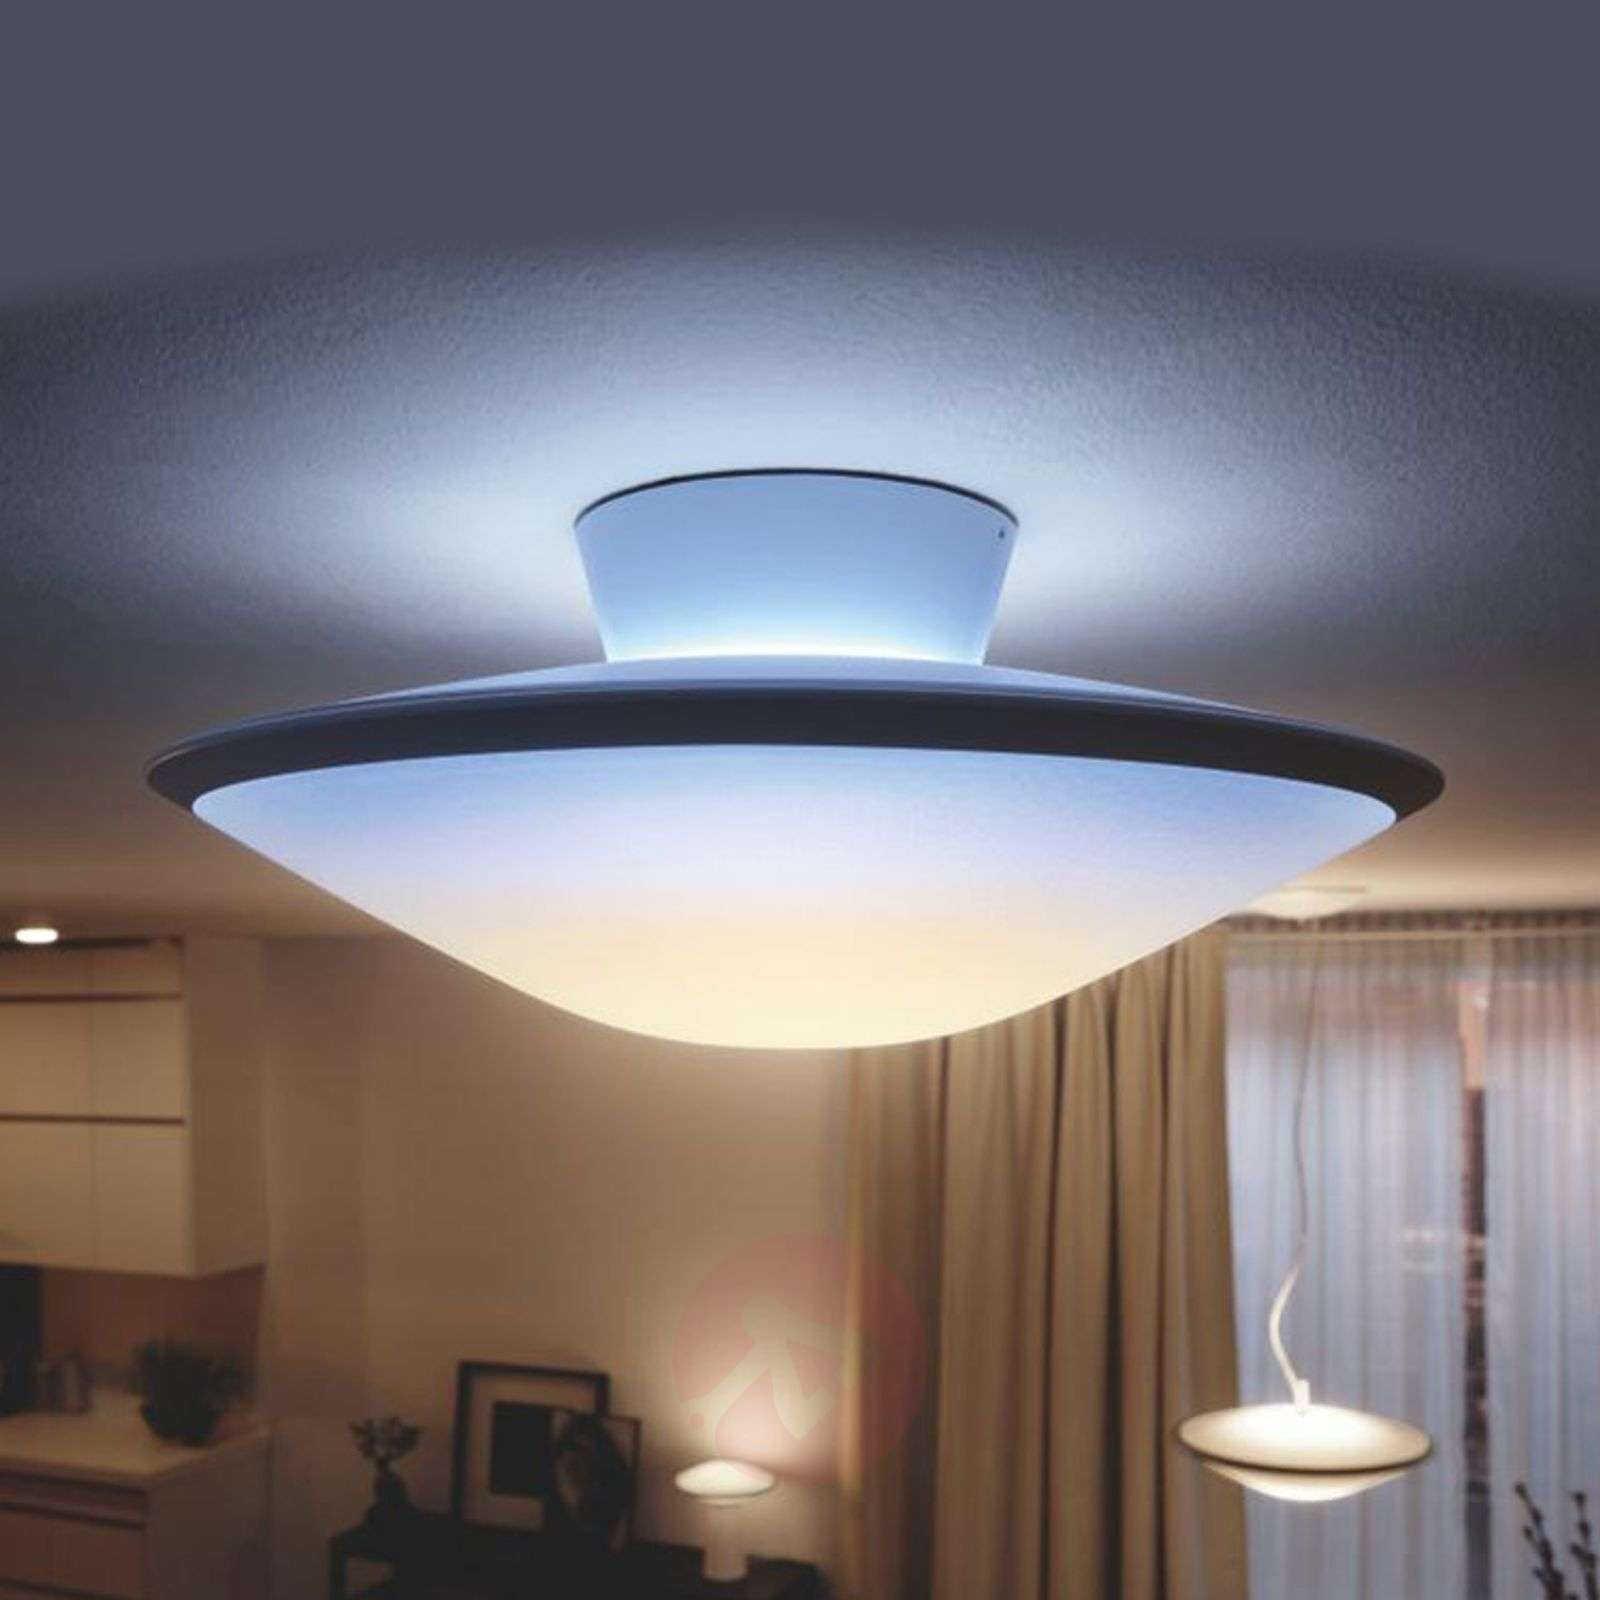 Ceiling light Philips Hue Phoenix, white ambiance-7531608-01